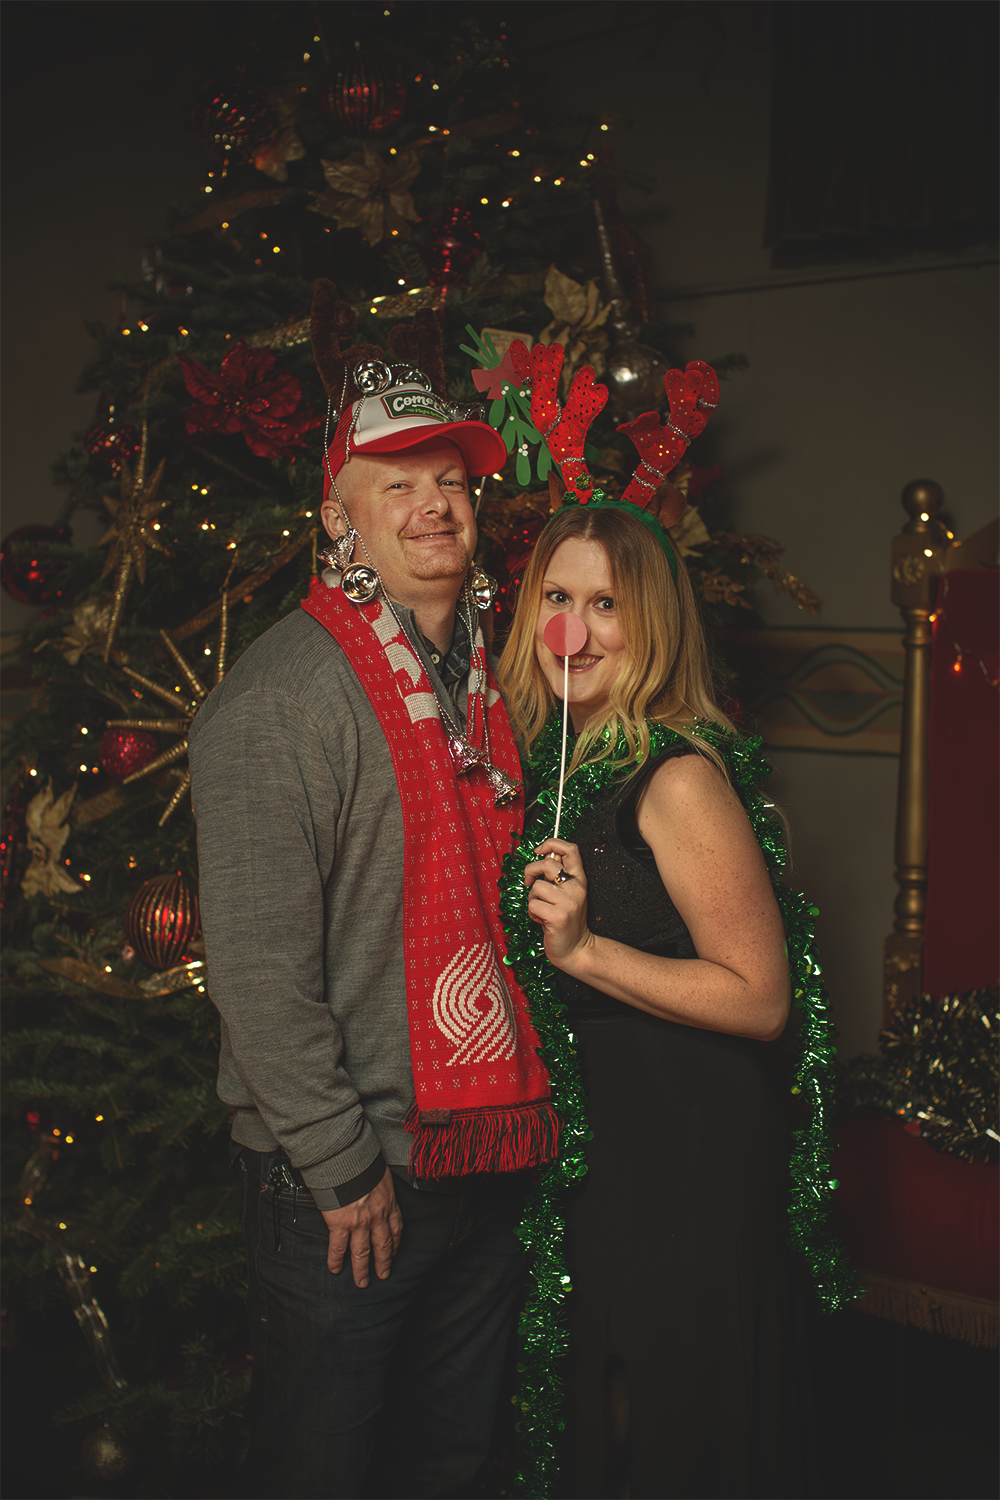 epproperties-vancouver-washington-xmas-party-photolga22.png